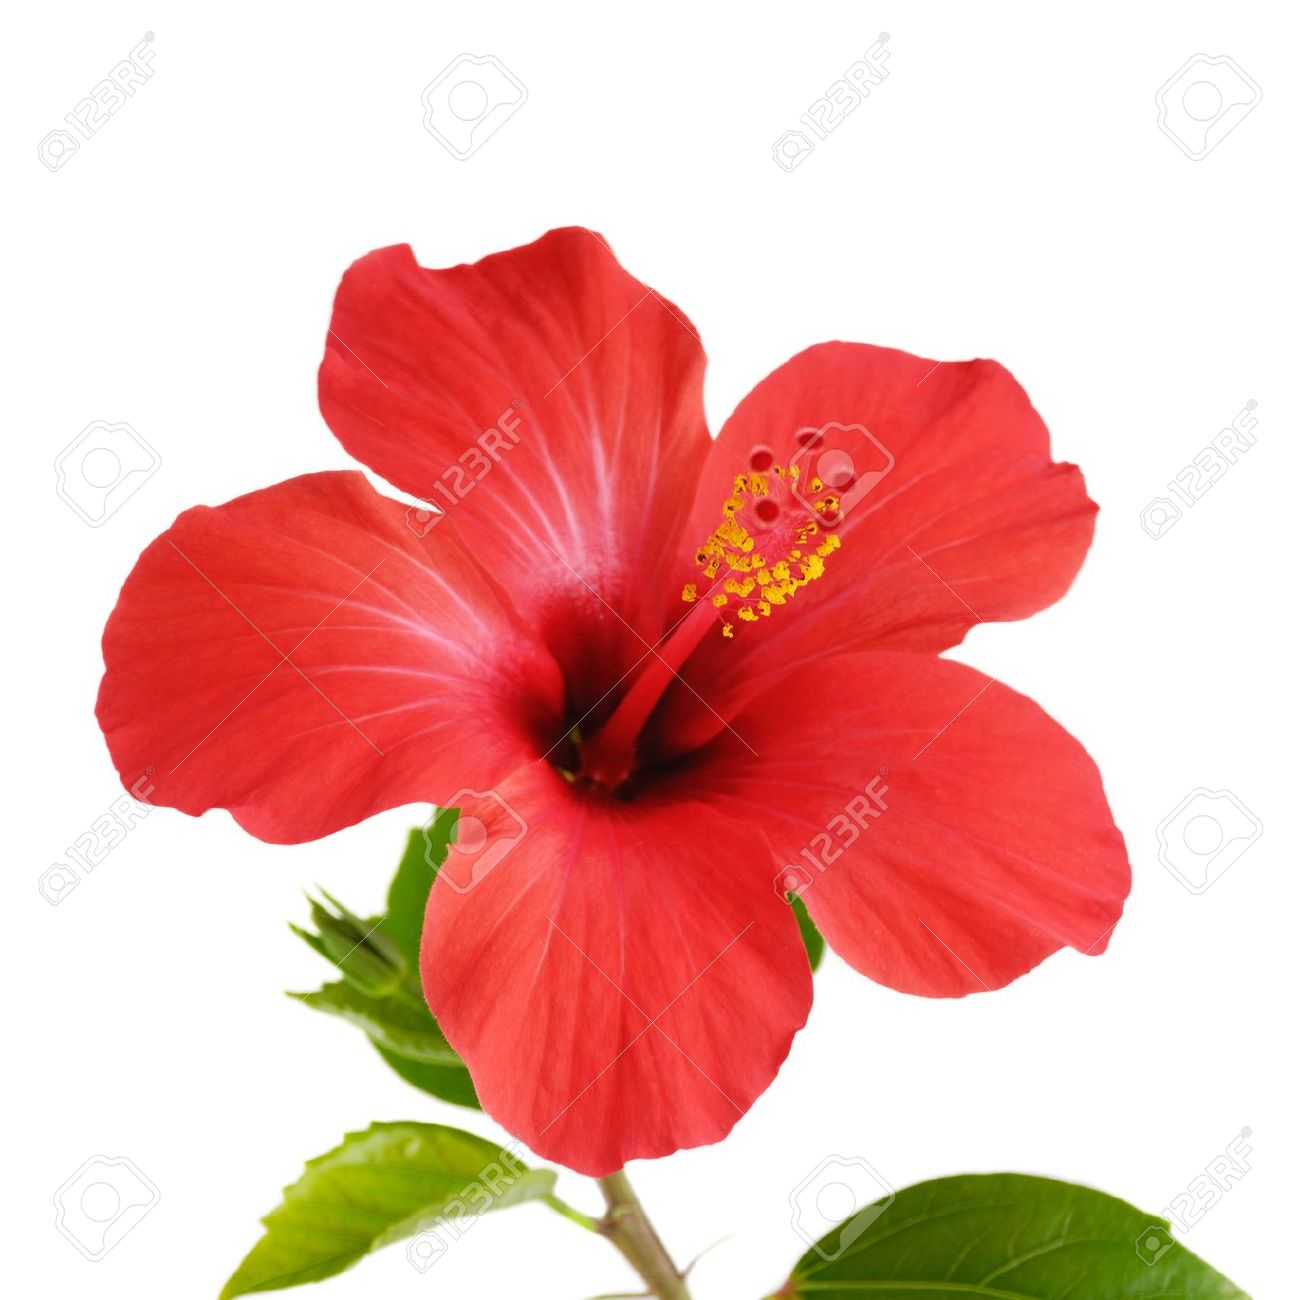 beautiful red hibiscus flower stock photos images. royalty free, Beautiful flower